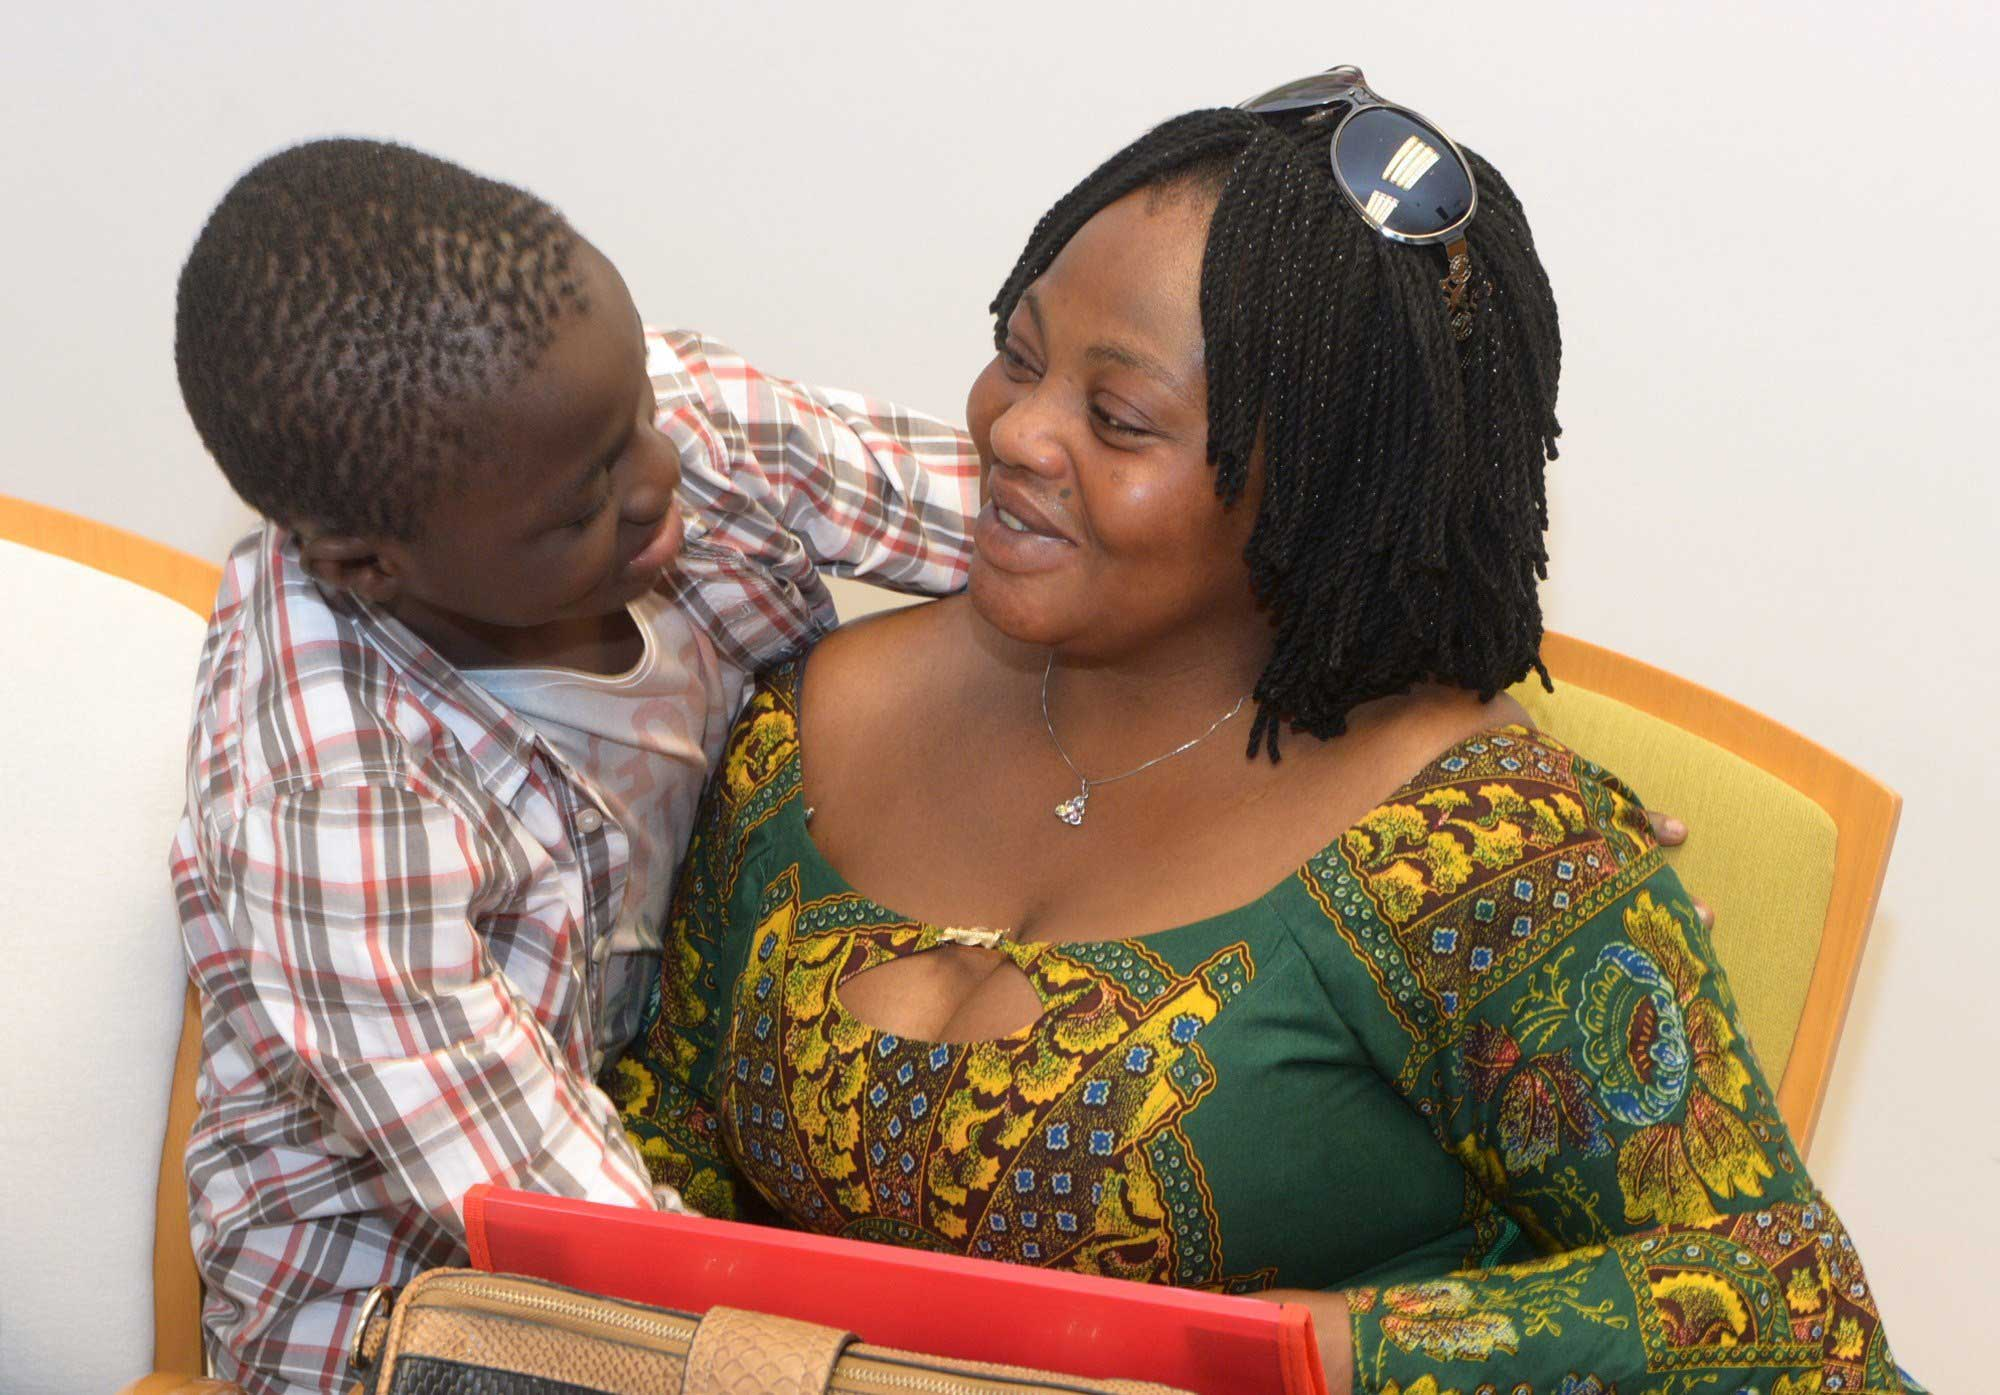 A handout pictured realeased  shows Ivorian boy Adou Ouattara, left, hugging his mother Lucie Ouattara after being reunited with her in Ceuta, on June 8, 2015